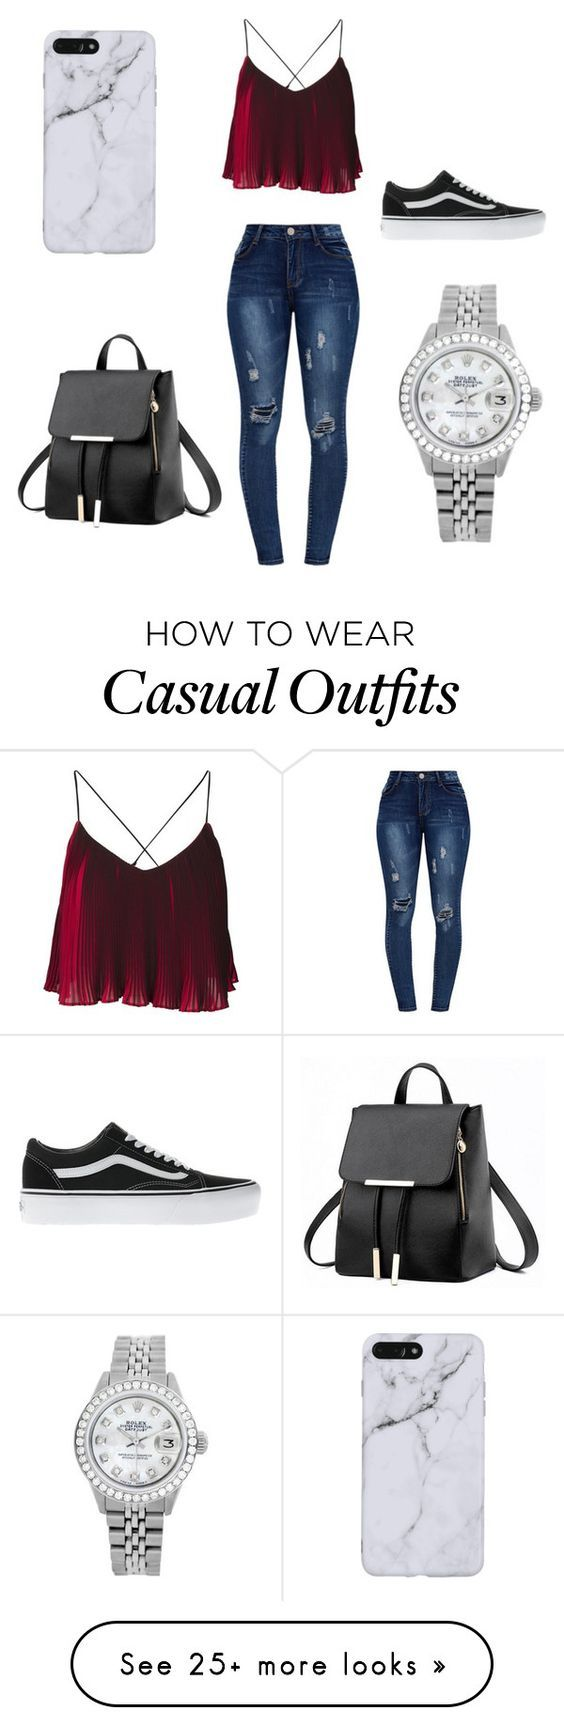 Pin by new fashion trends on woman outfits pinterest casual